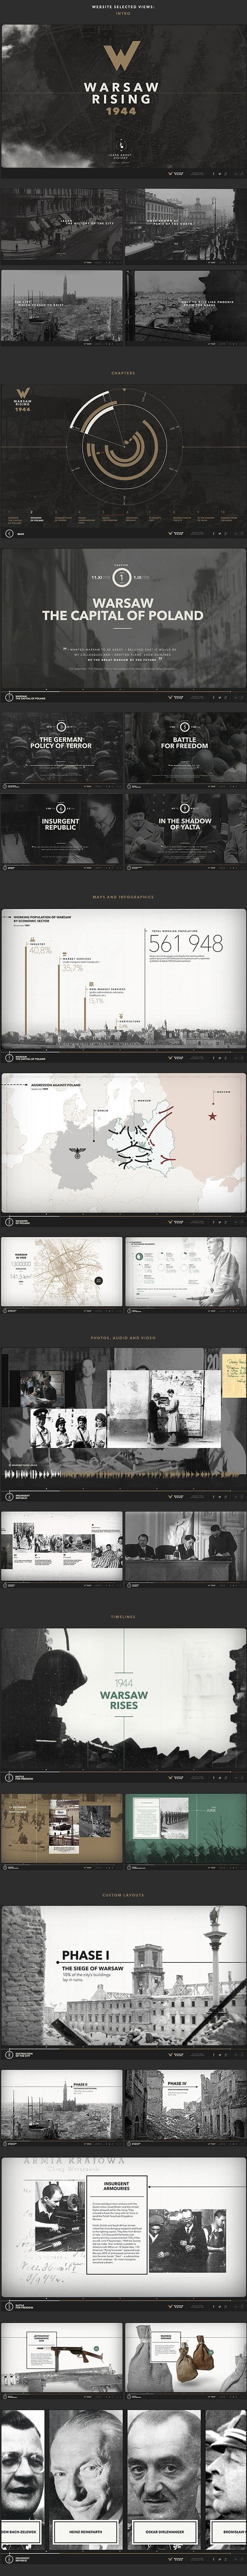 Warsaw Rising 1944 was developed in cooperation between the Topography of Terror Foundation in Berlin and the Warsaw Rising Museum for the anniversary of the Warsaw Rising. #infographics